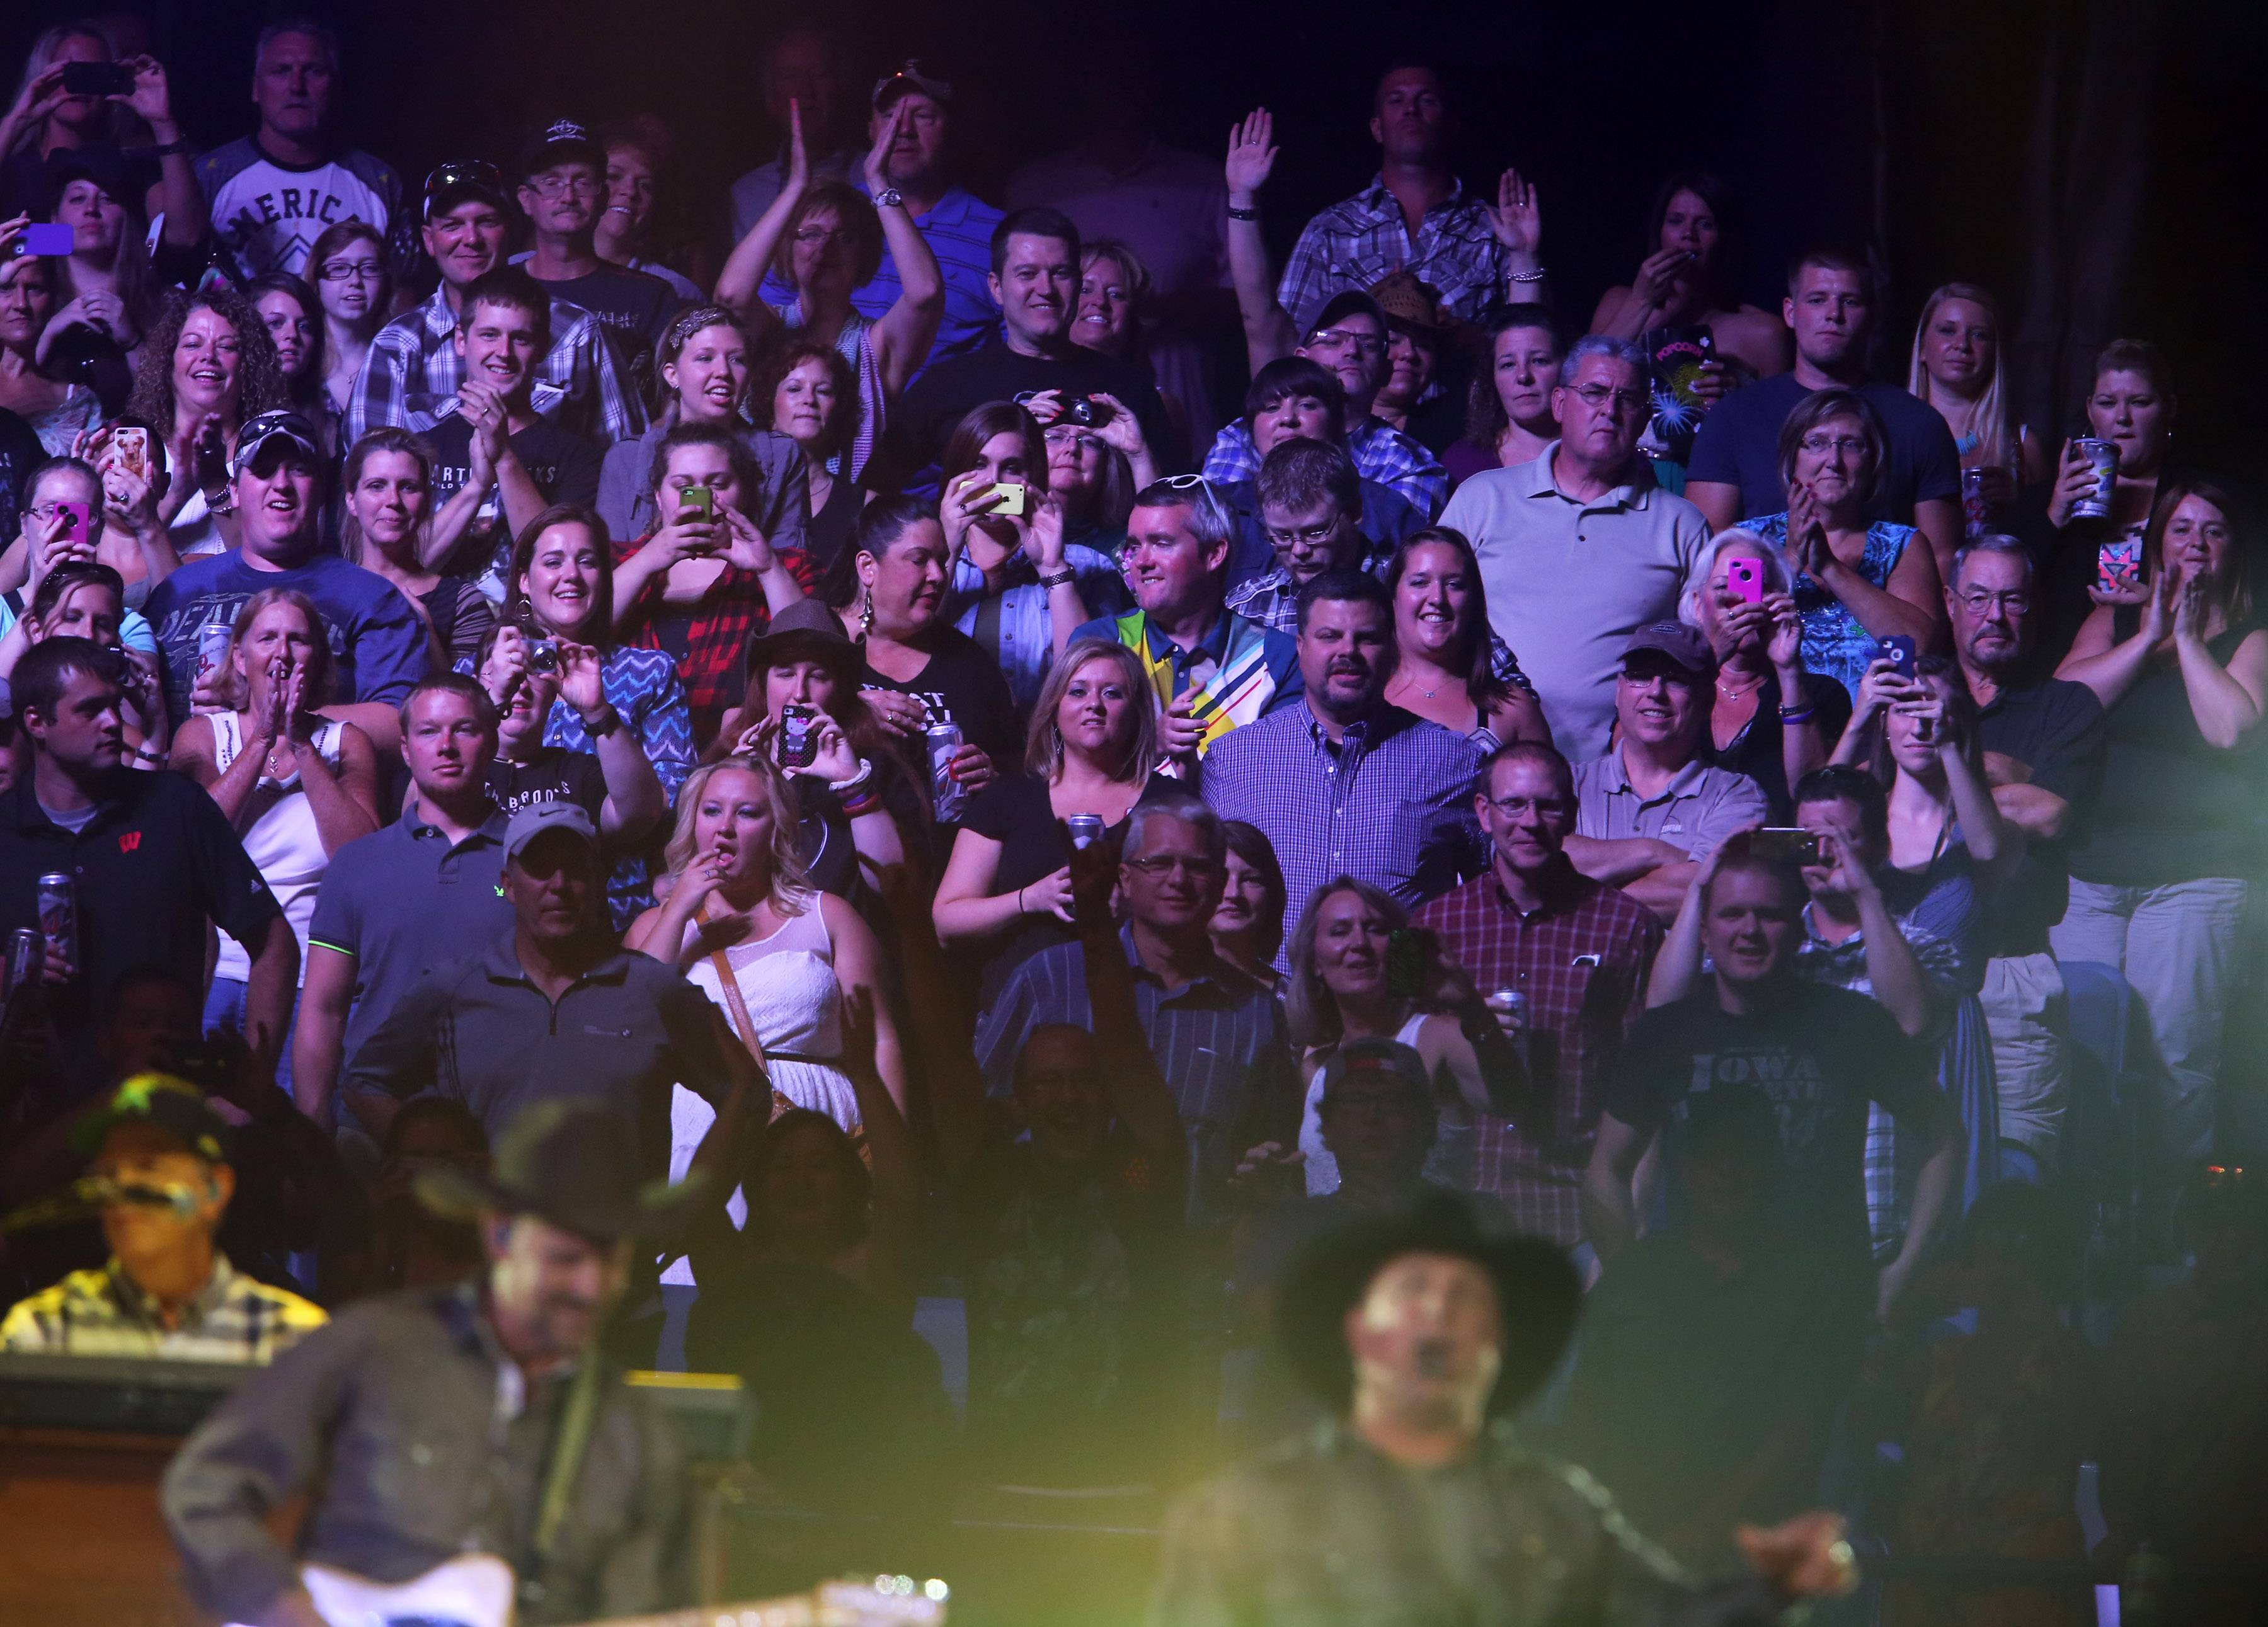 Fans cheer on country music star Garth Brooks as he performs at Allstate Arena on Thursday in Rosemont.